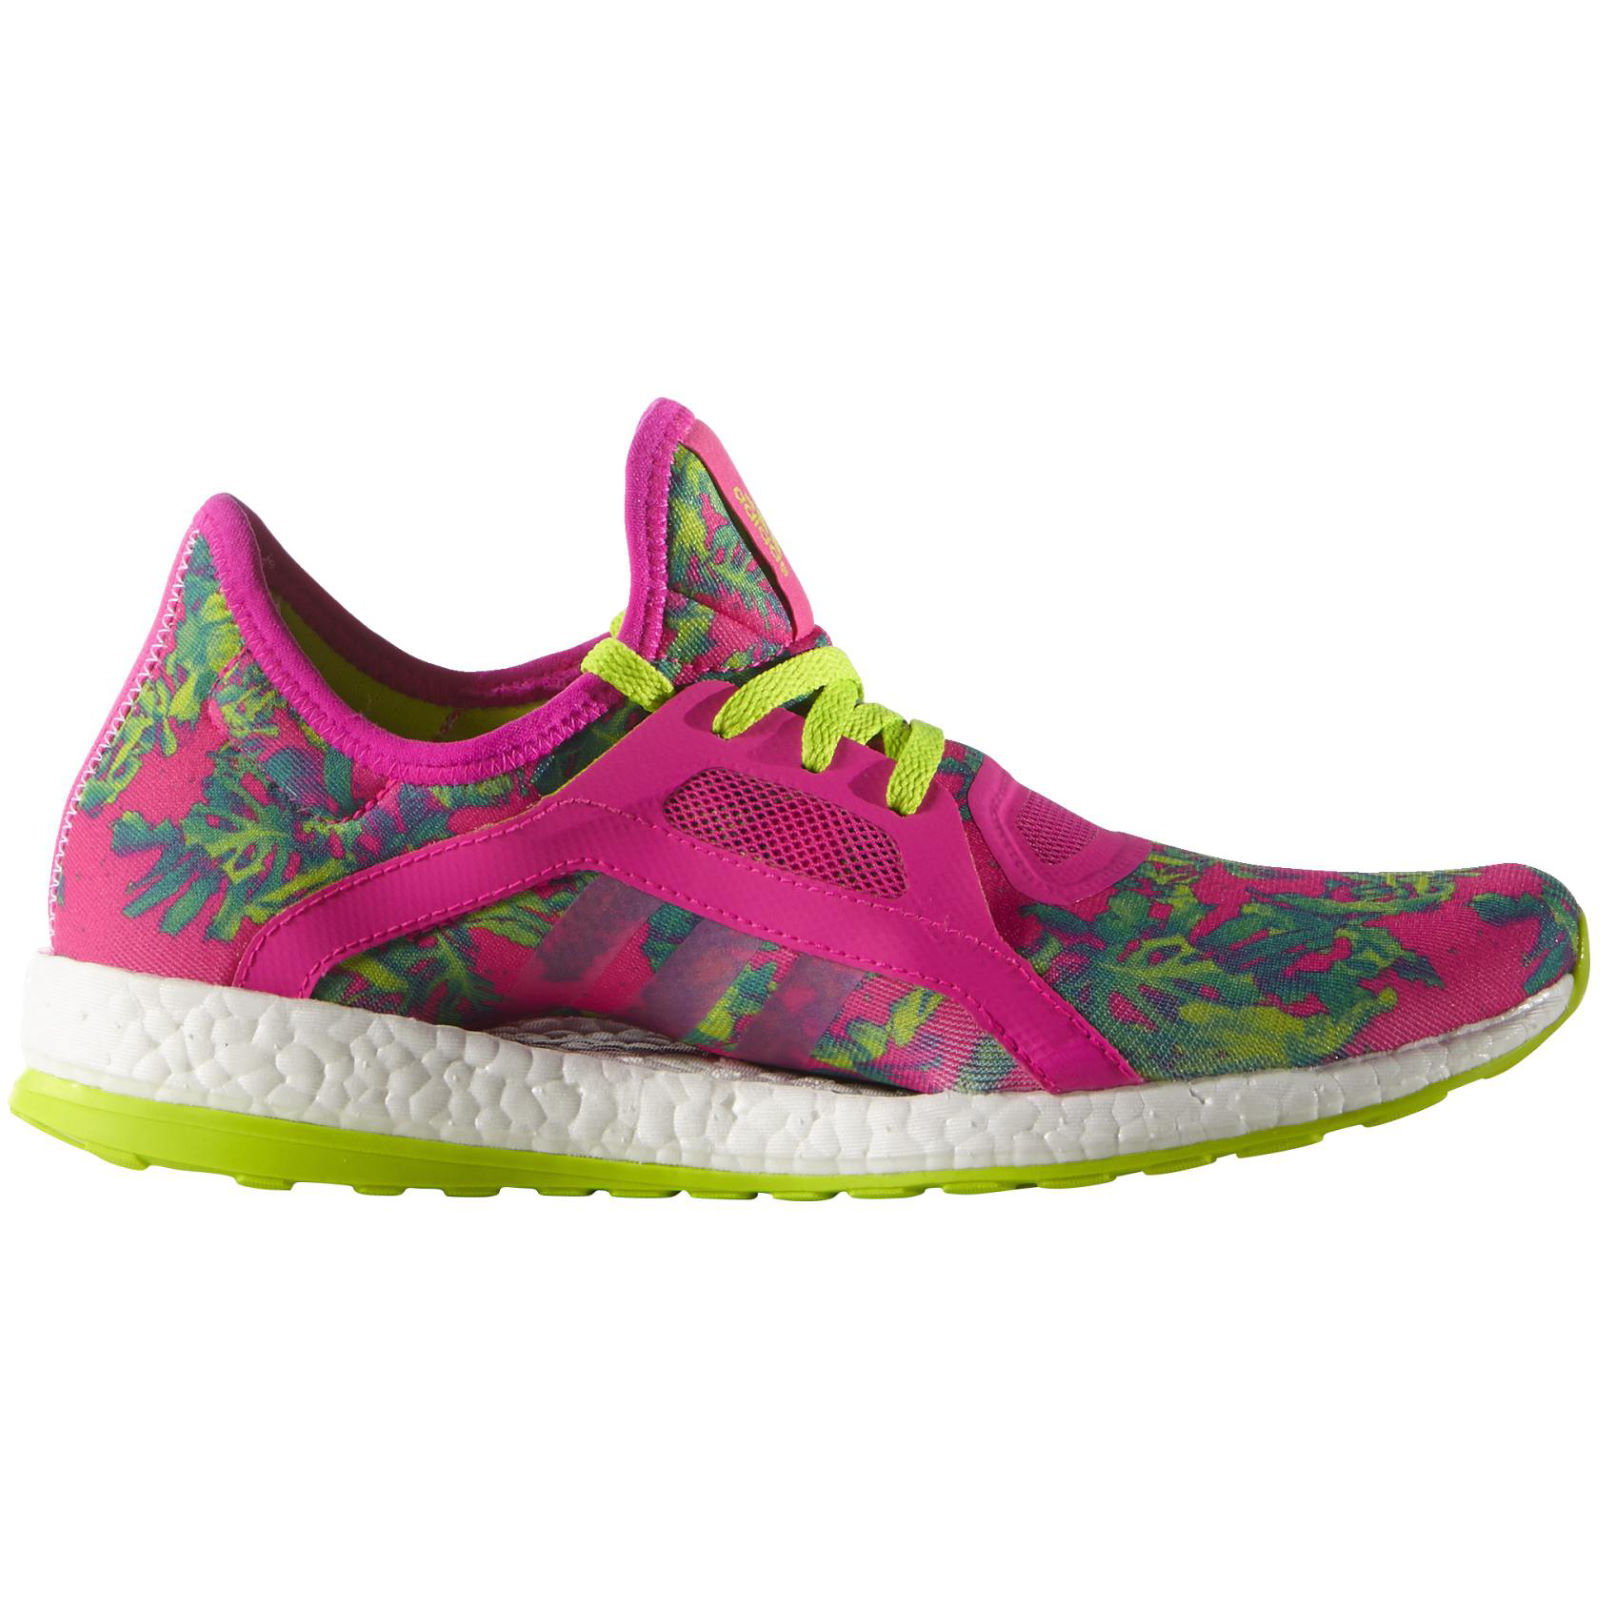 Adidas Pure Boost Mujer 2016